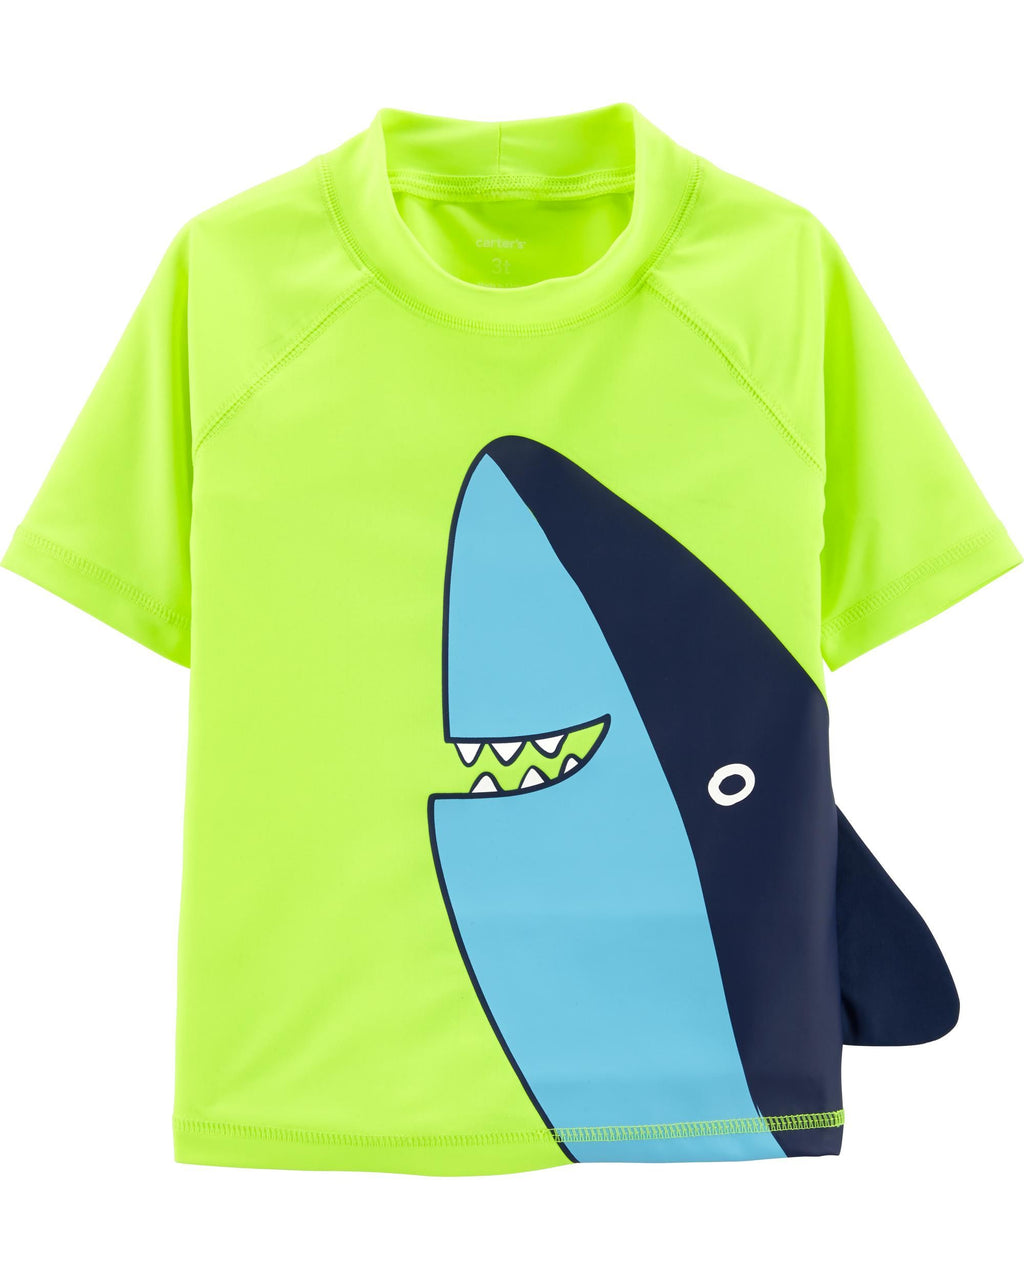 Remera con proteccion UV CARTERS Shark Rashguard